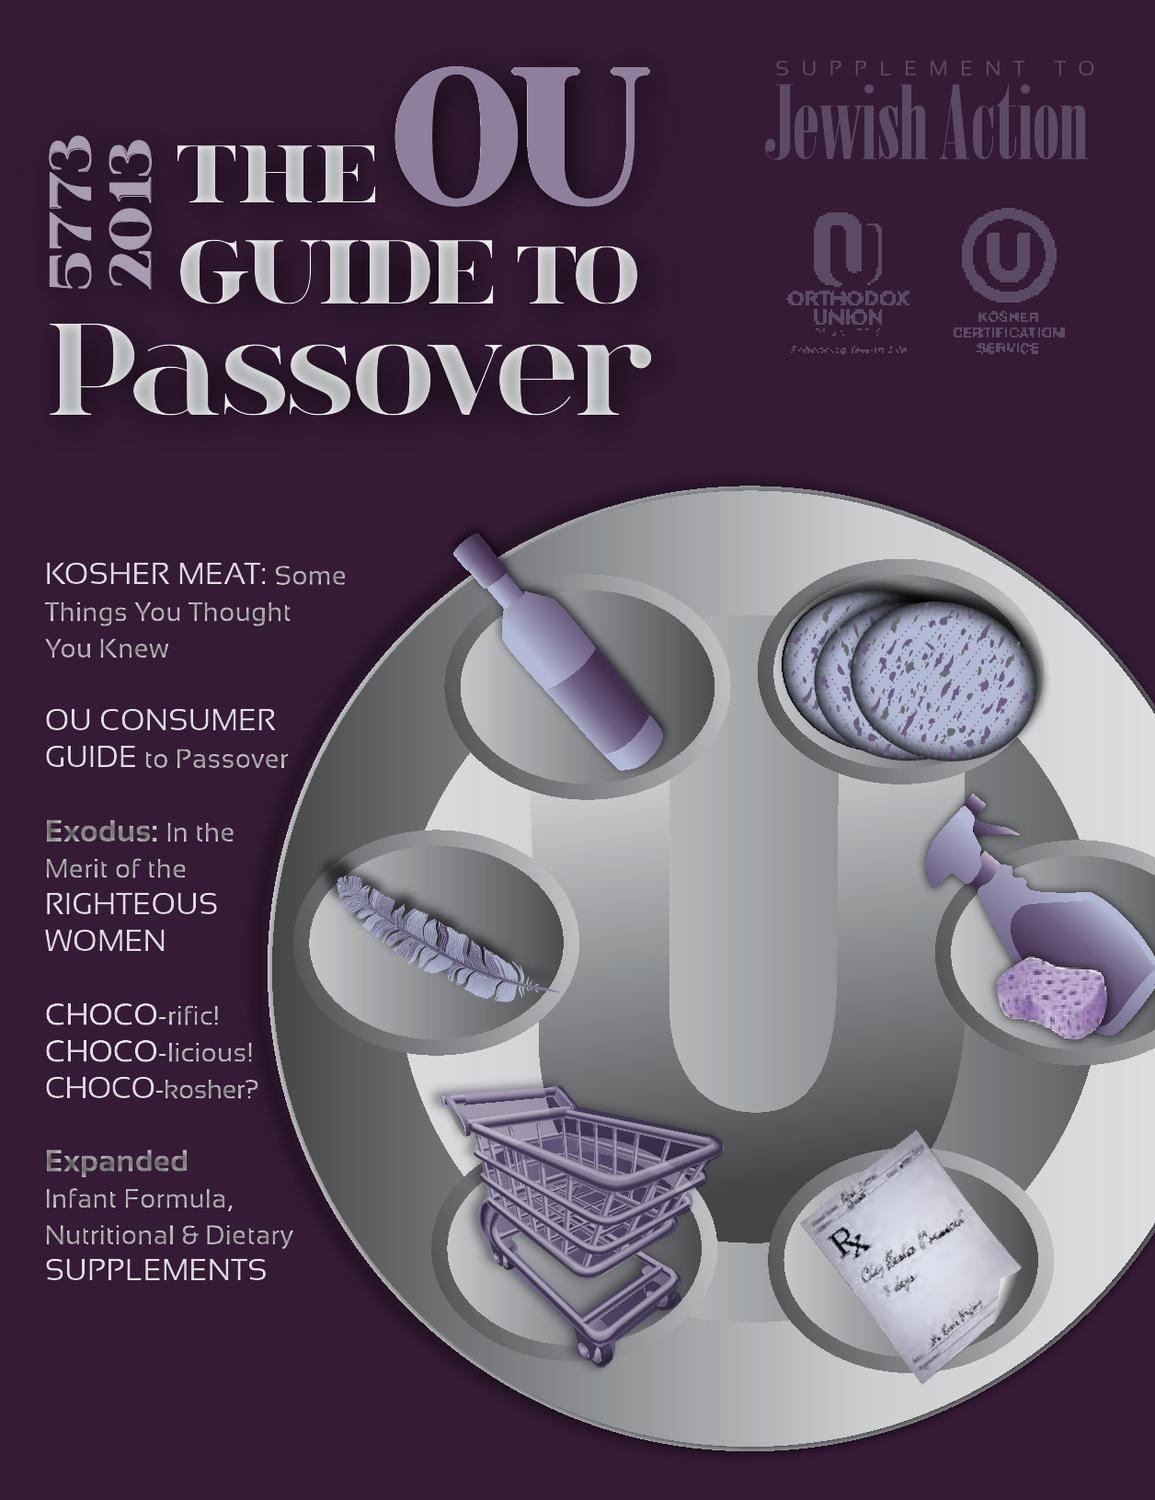 The Ou Guide To Passover 2013 5773 By Gary Magder Issuu